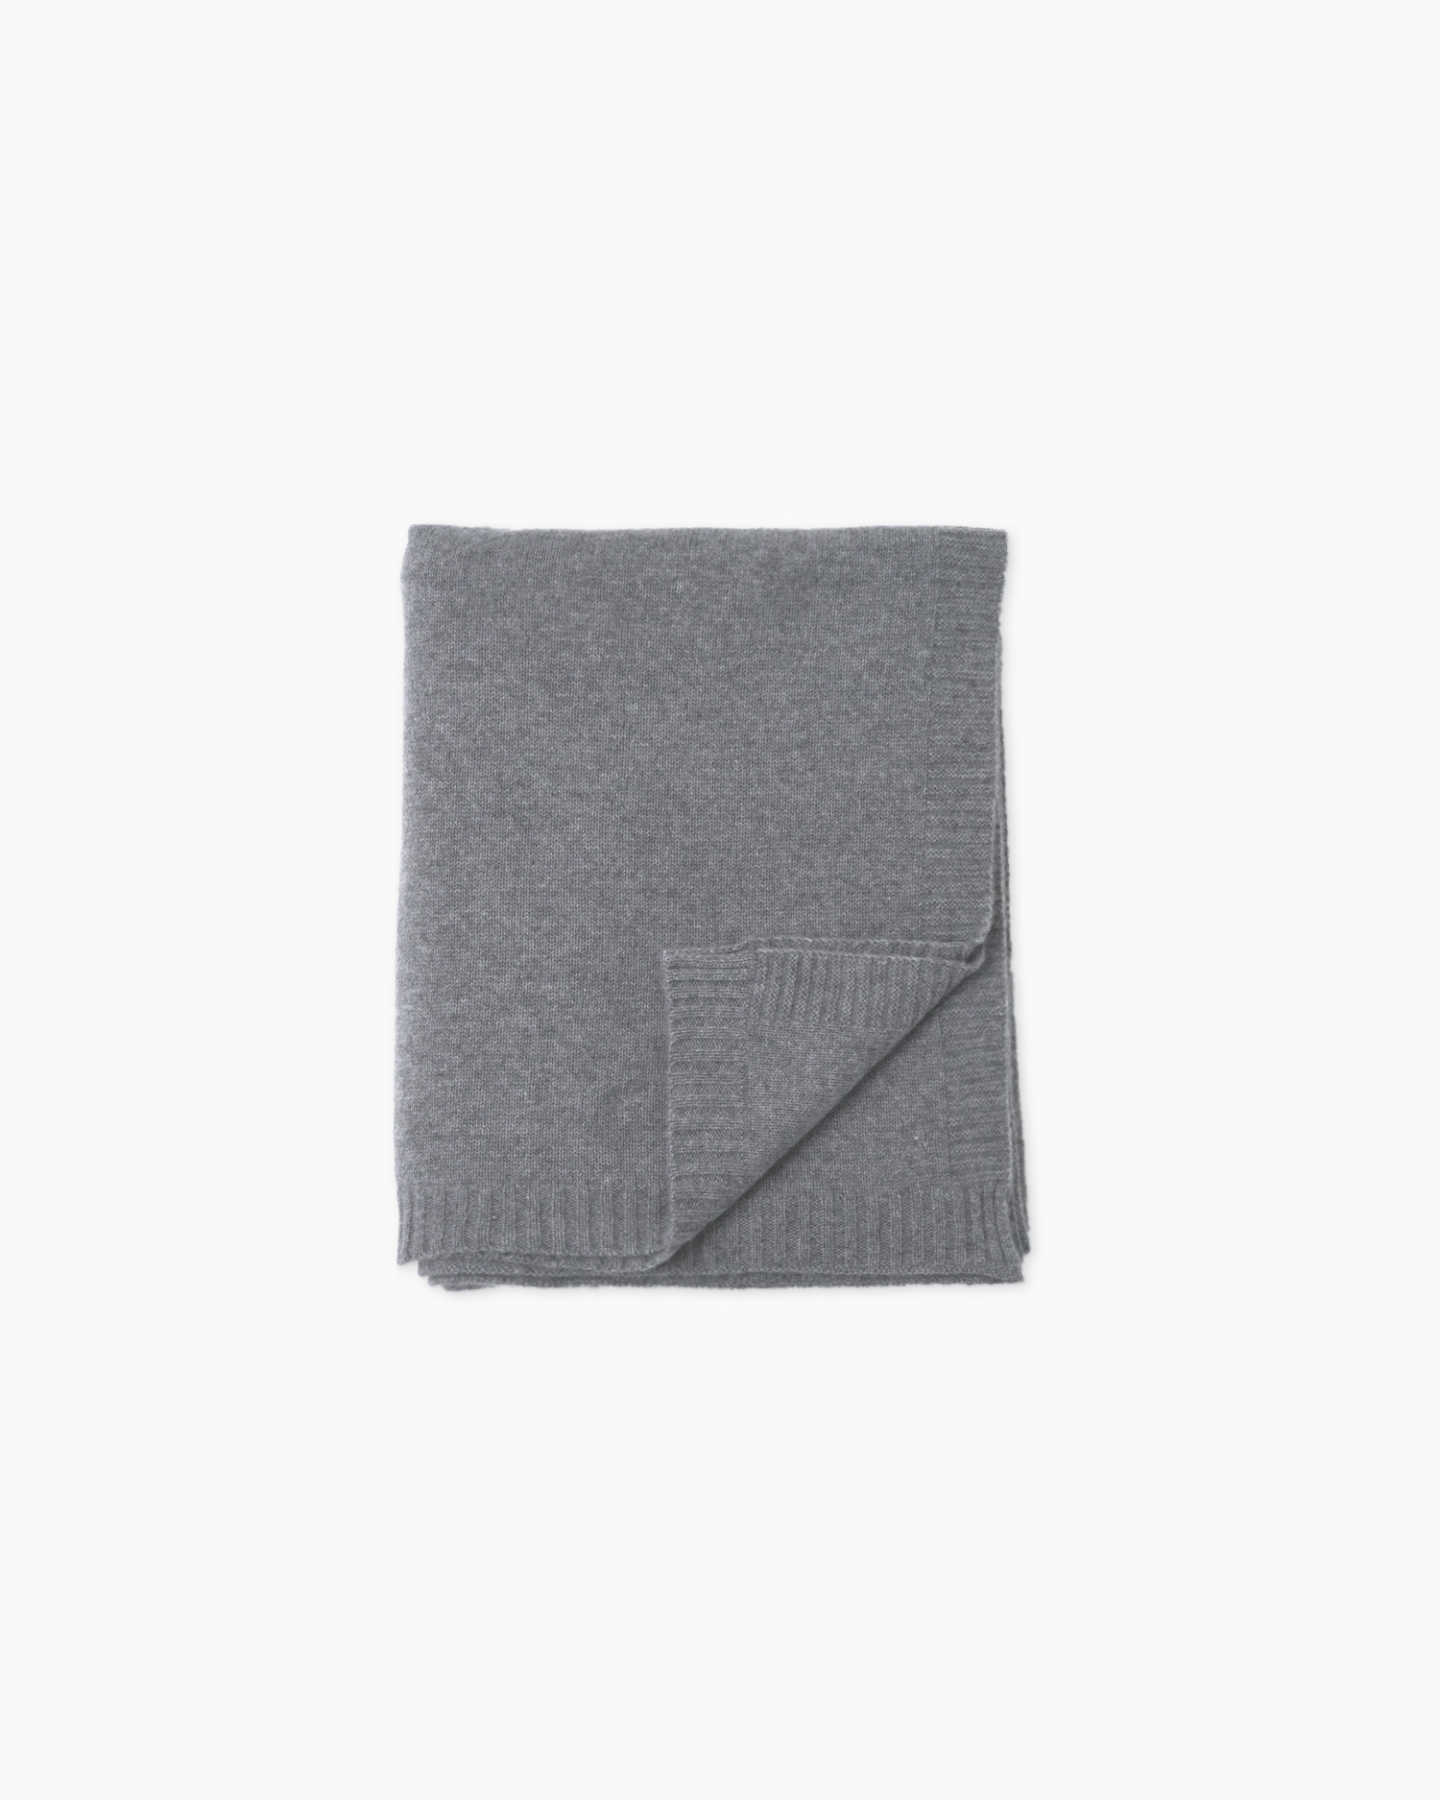 Luxe Knit Cashmere Throw - Heather Grey